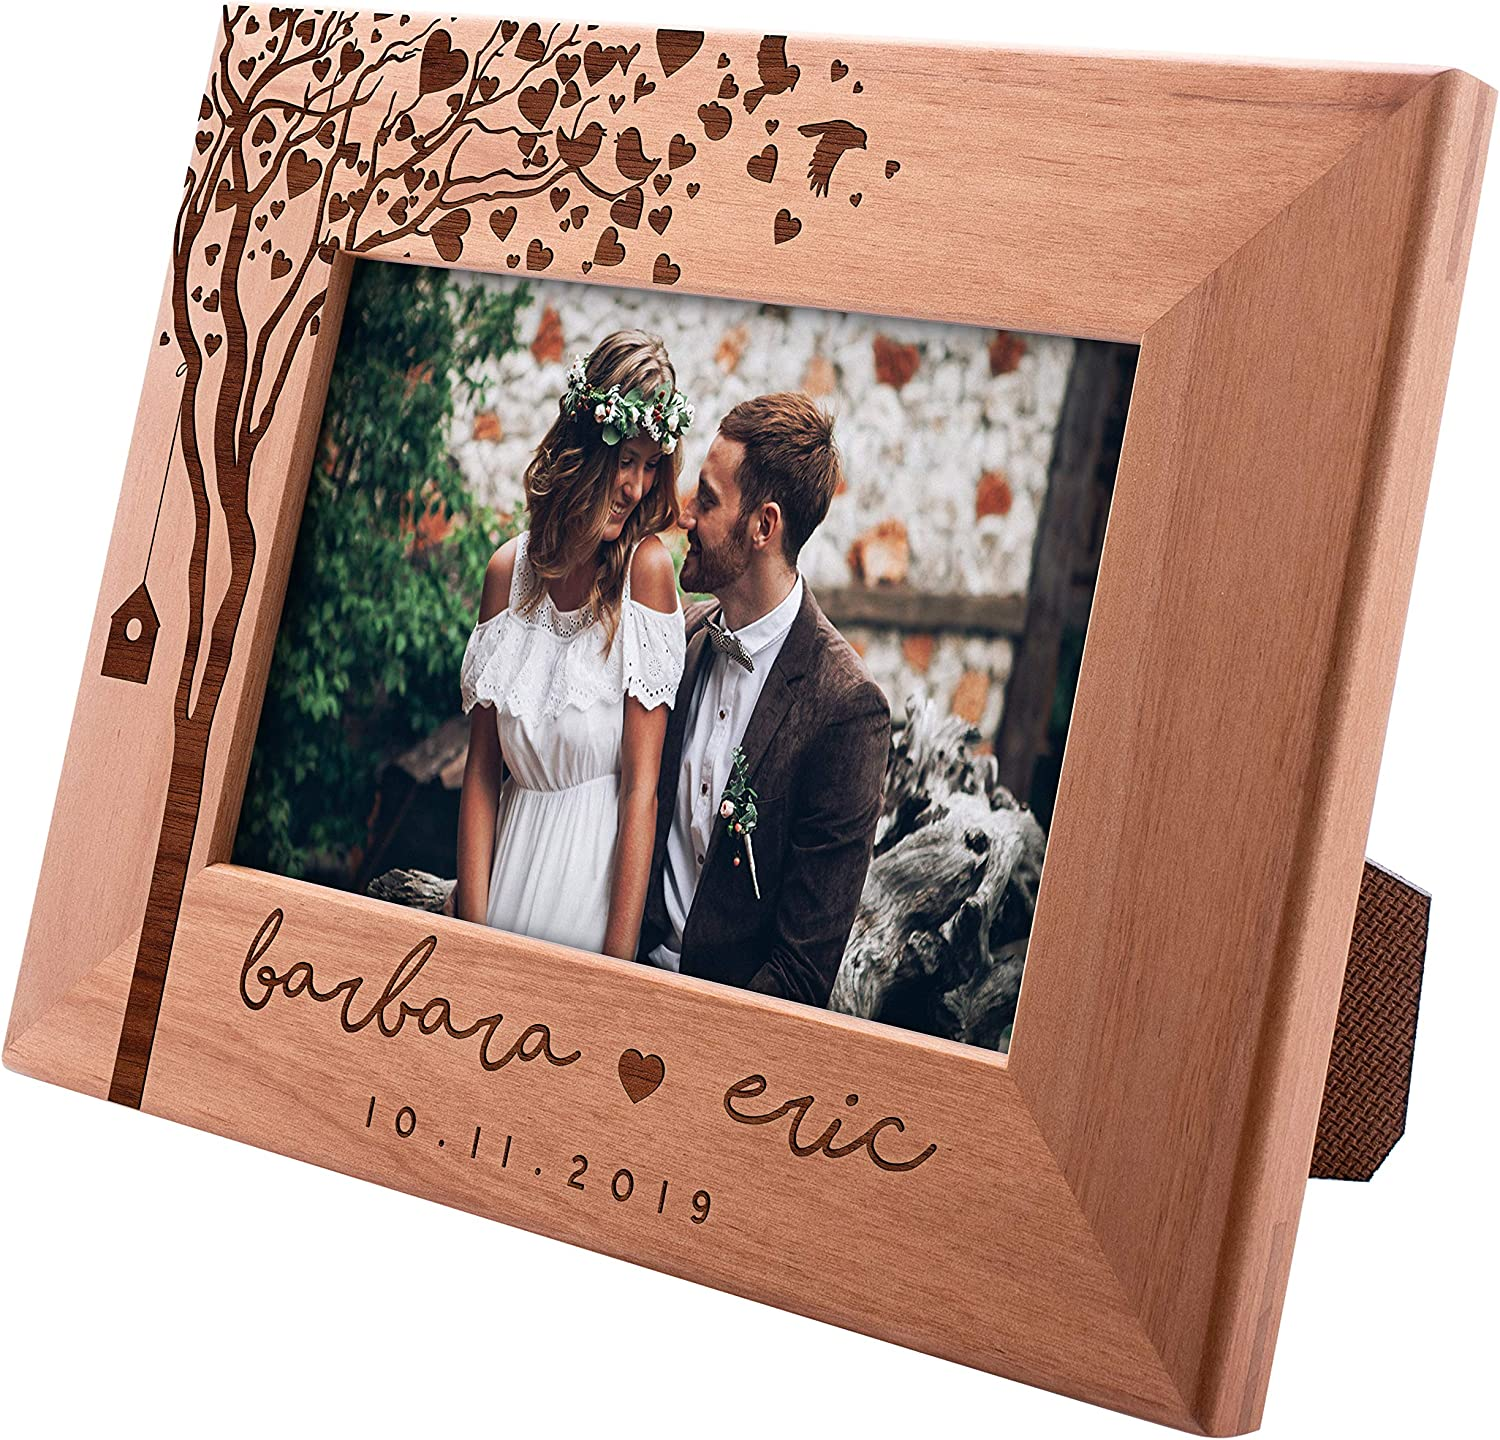 Amazon Com Be Burgundy Personalized Wedding Picture Frame 4x6 You And Me Romantic Wedding Gifts For The Couple Custom Wedding Photo Frame Anniversary Engagement Valentine S Day Mr Mrs Gifts